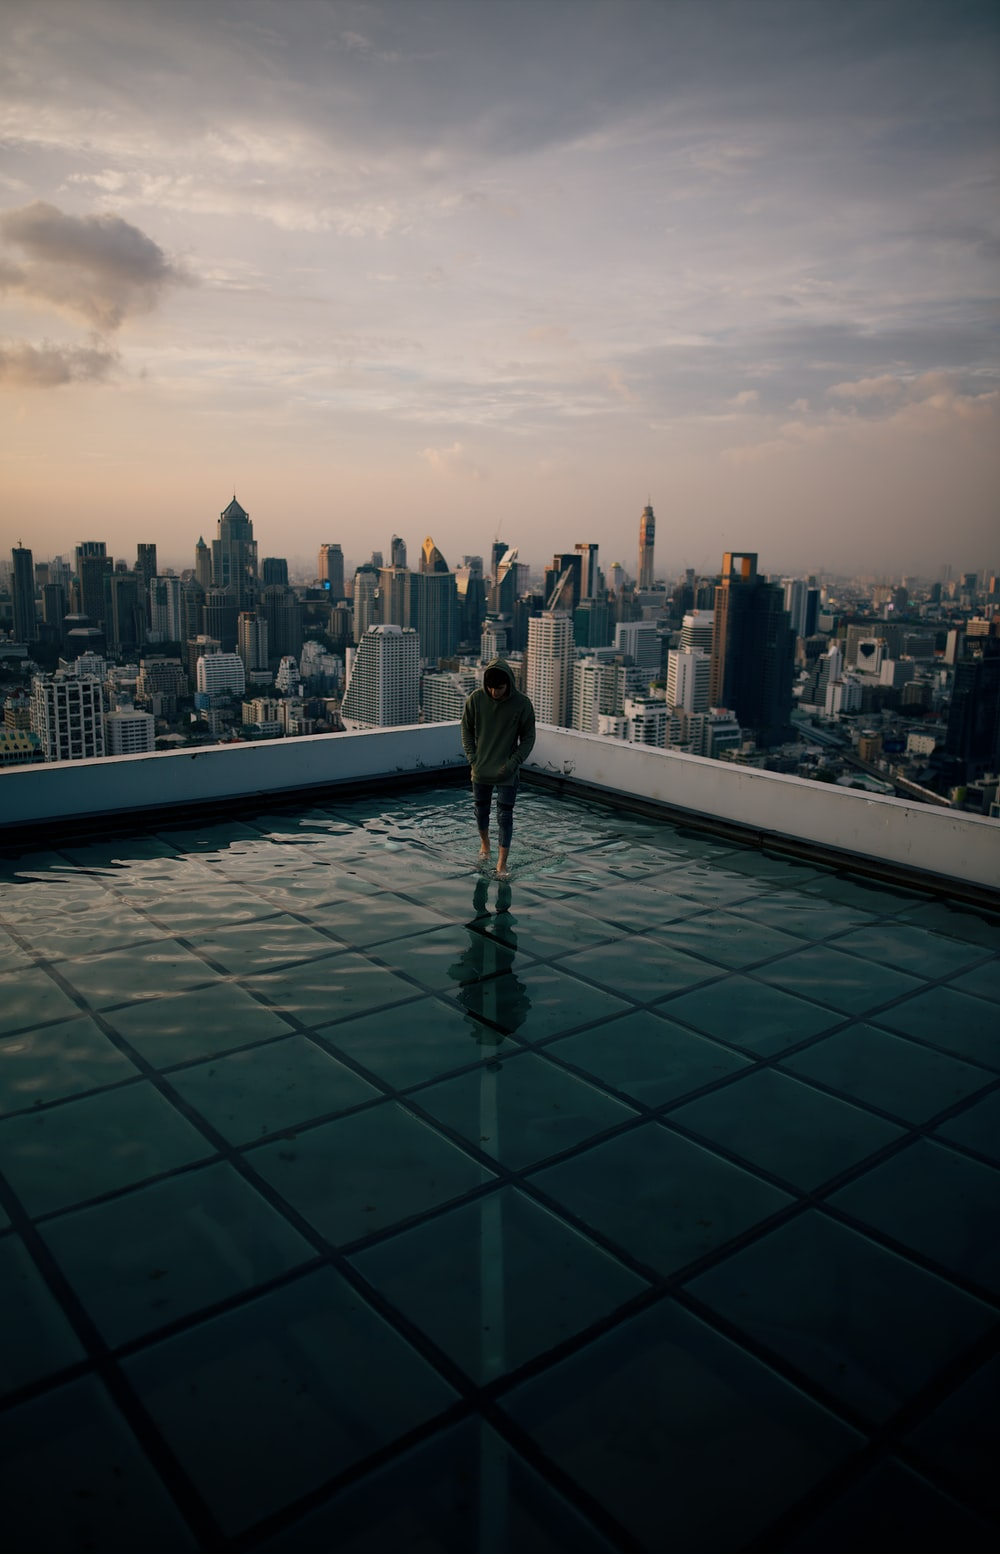 man standing on top of building facing high-rise building under gray sky